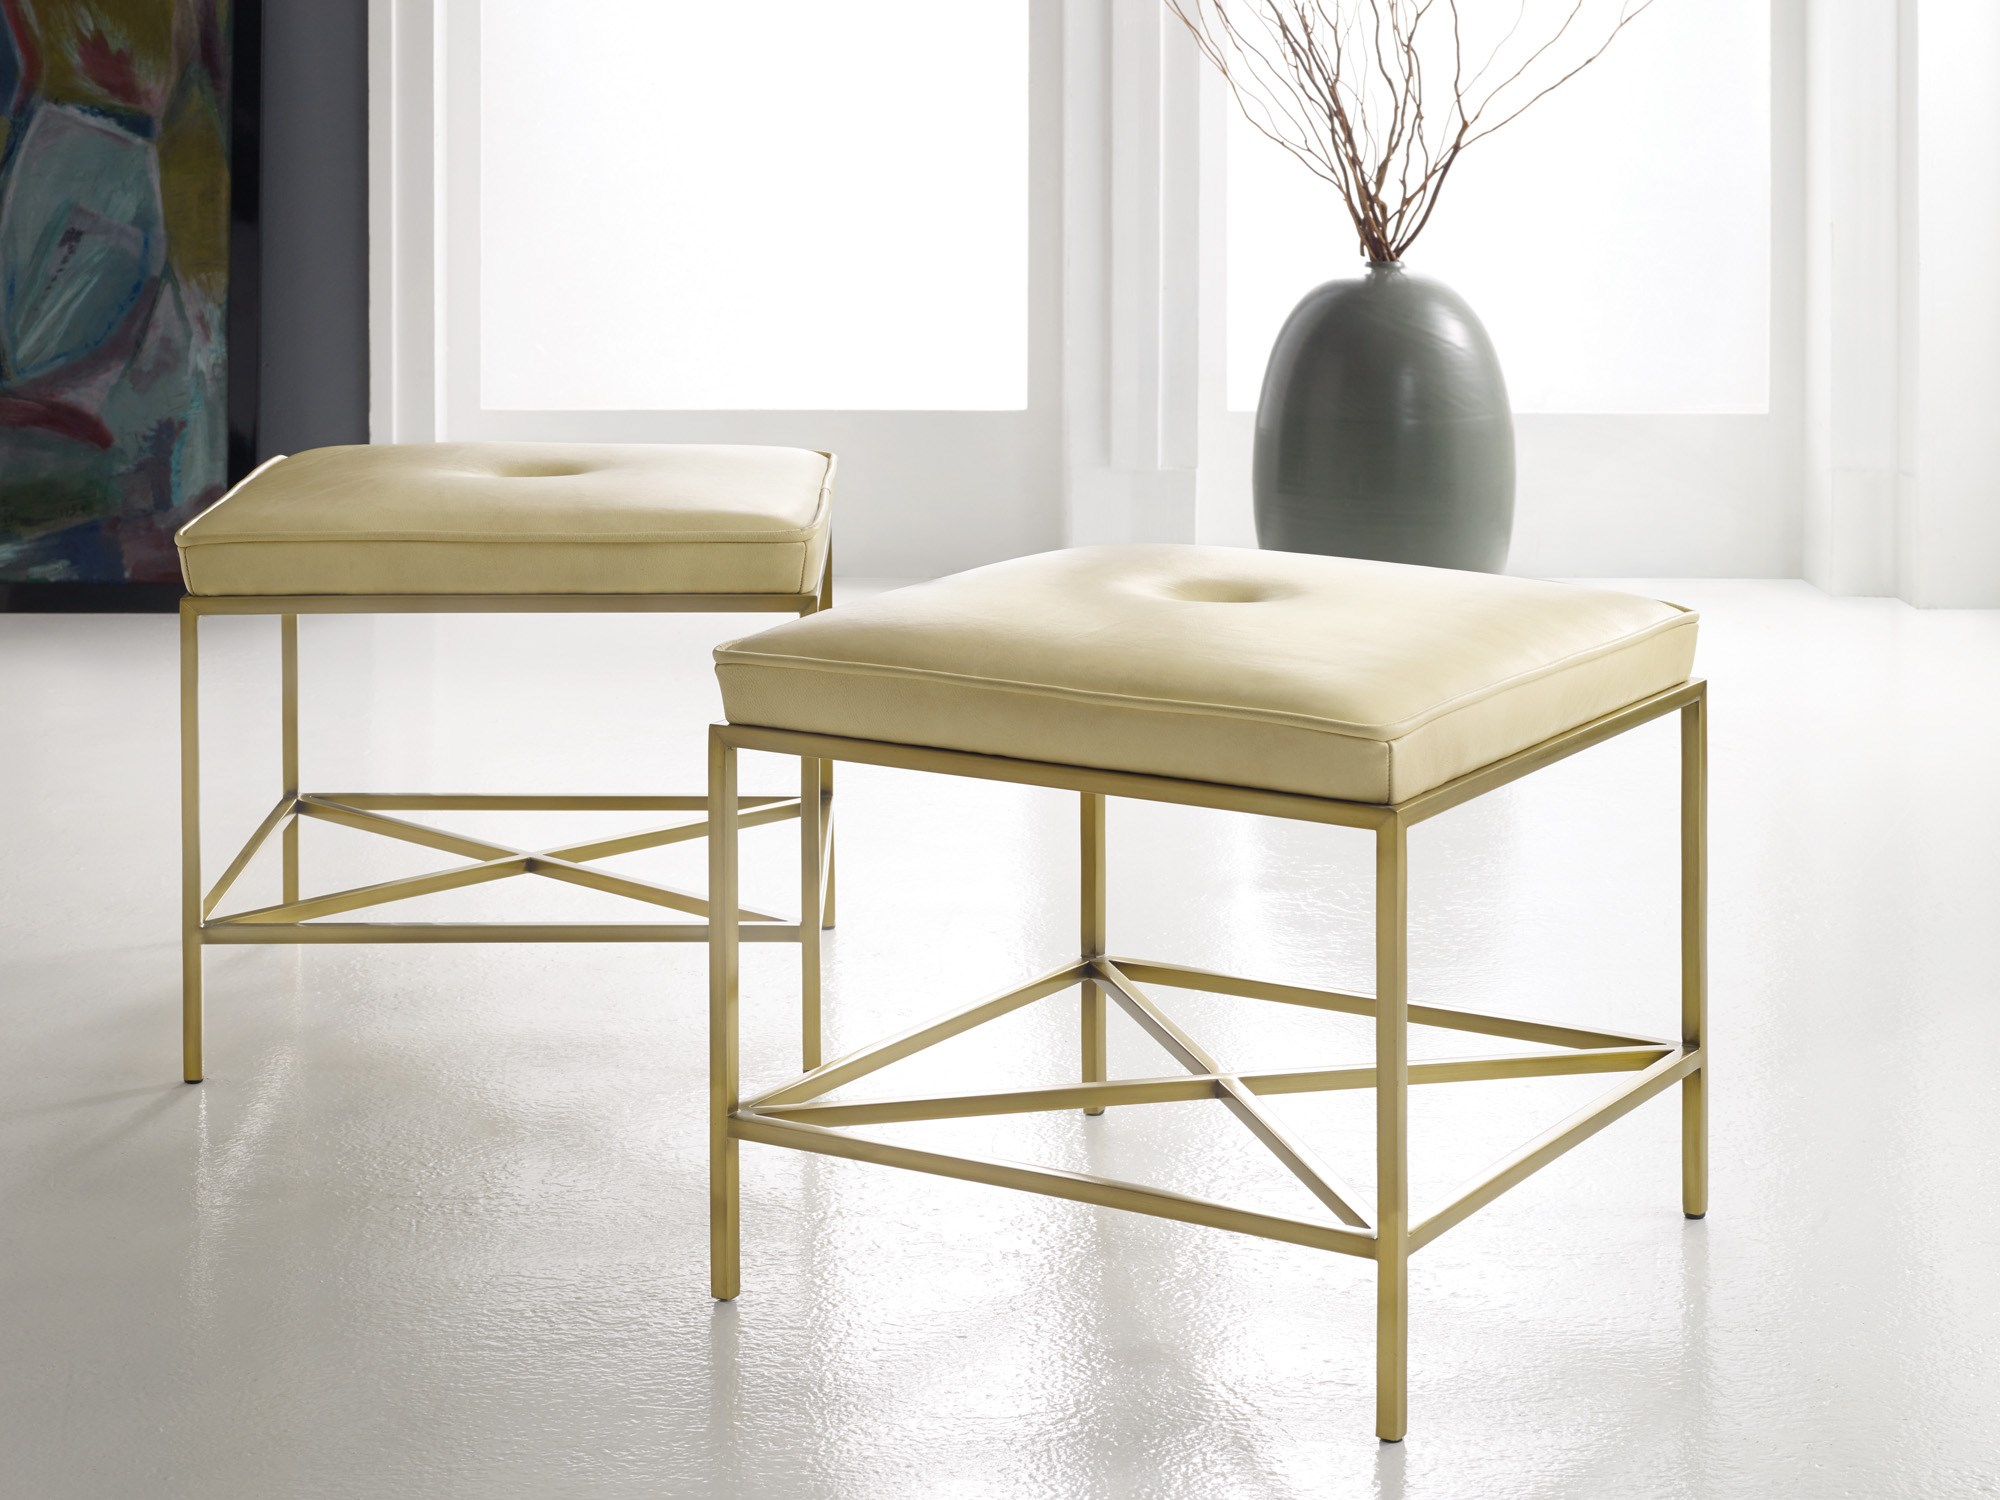 seating  english seating  british seating  contemporary seating  - leather  brass stool mhf